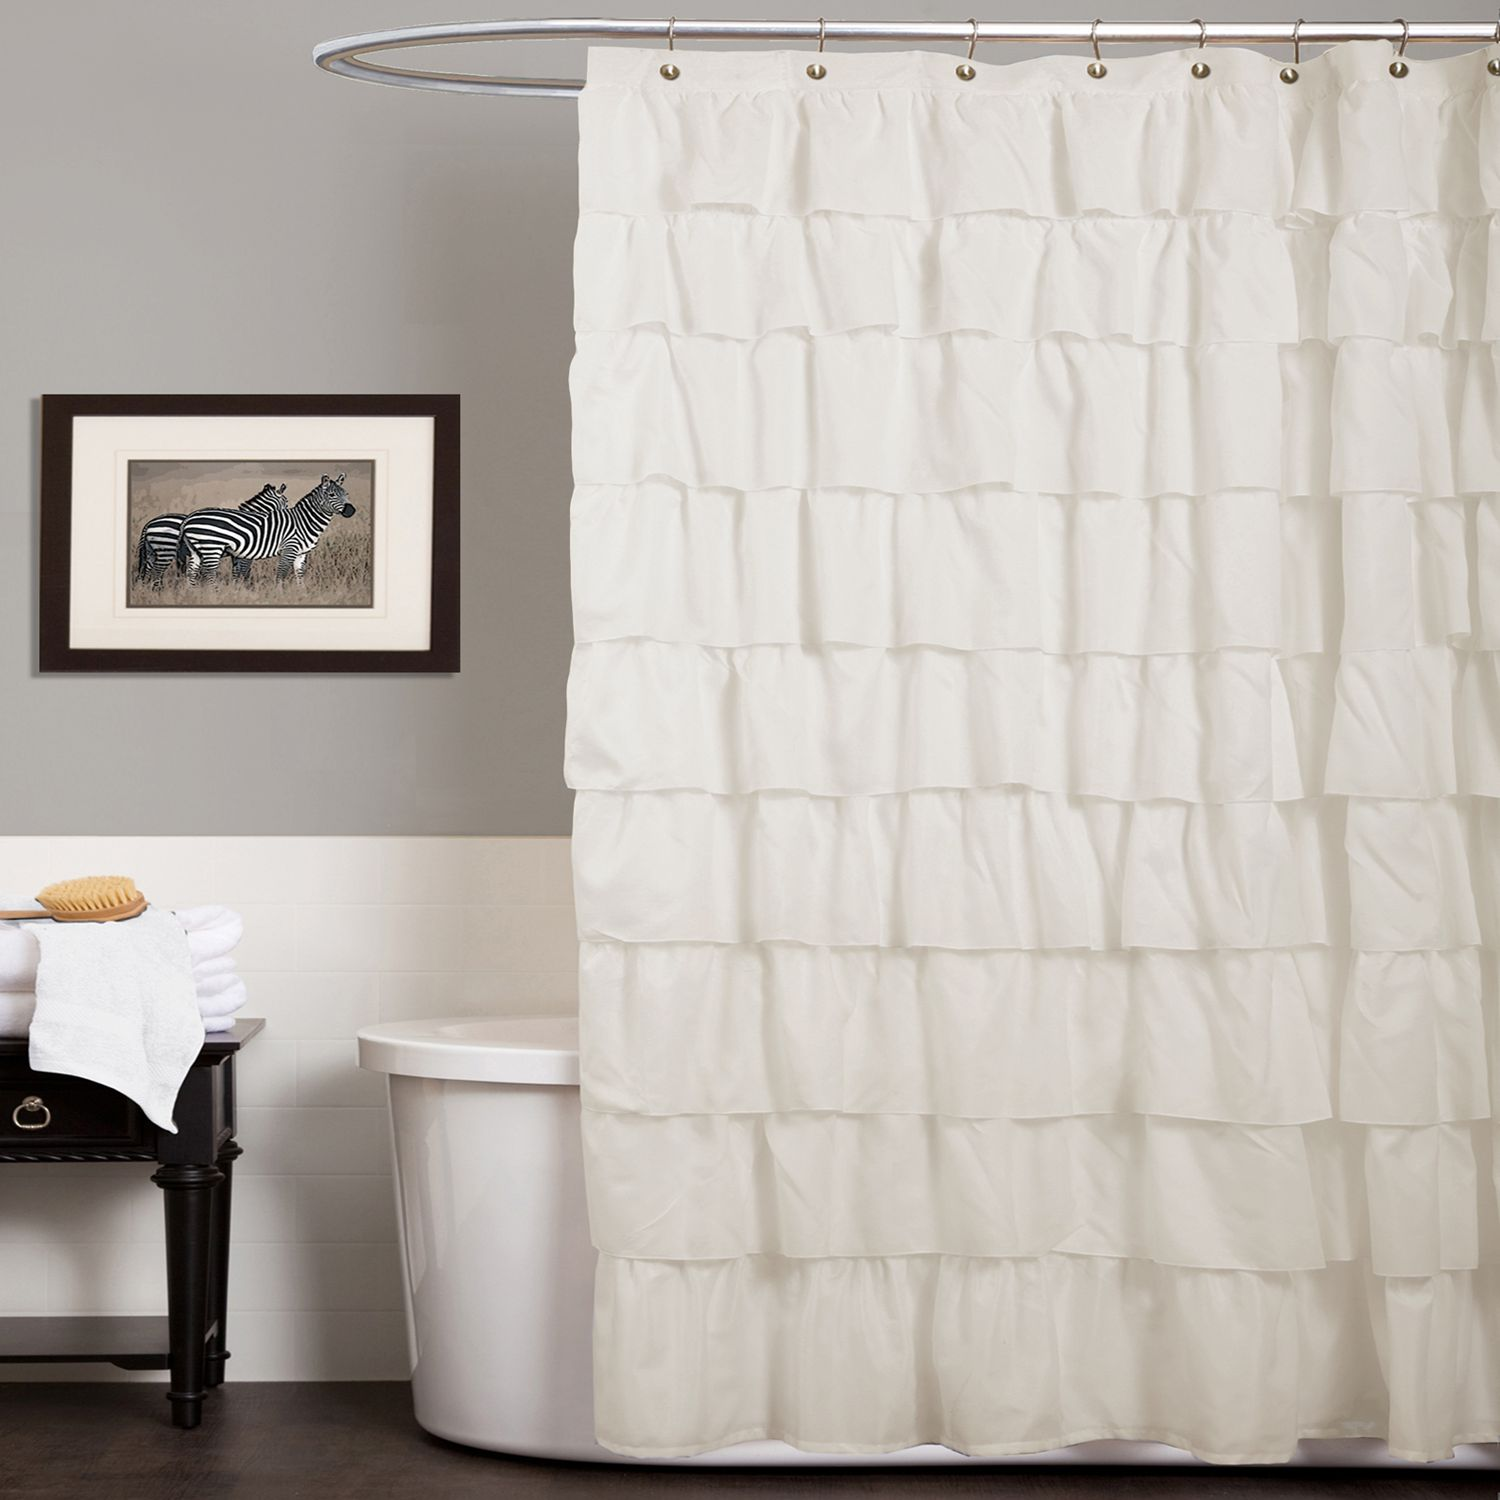 Lush Decor Ruffle Fabric Shower Curtain